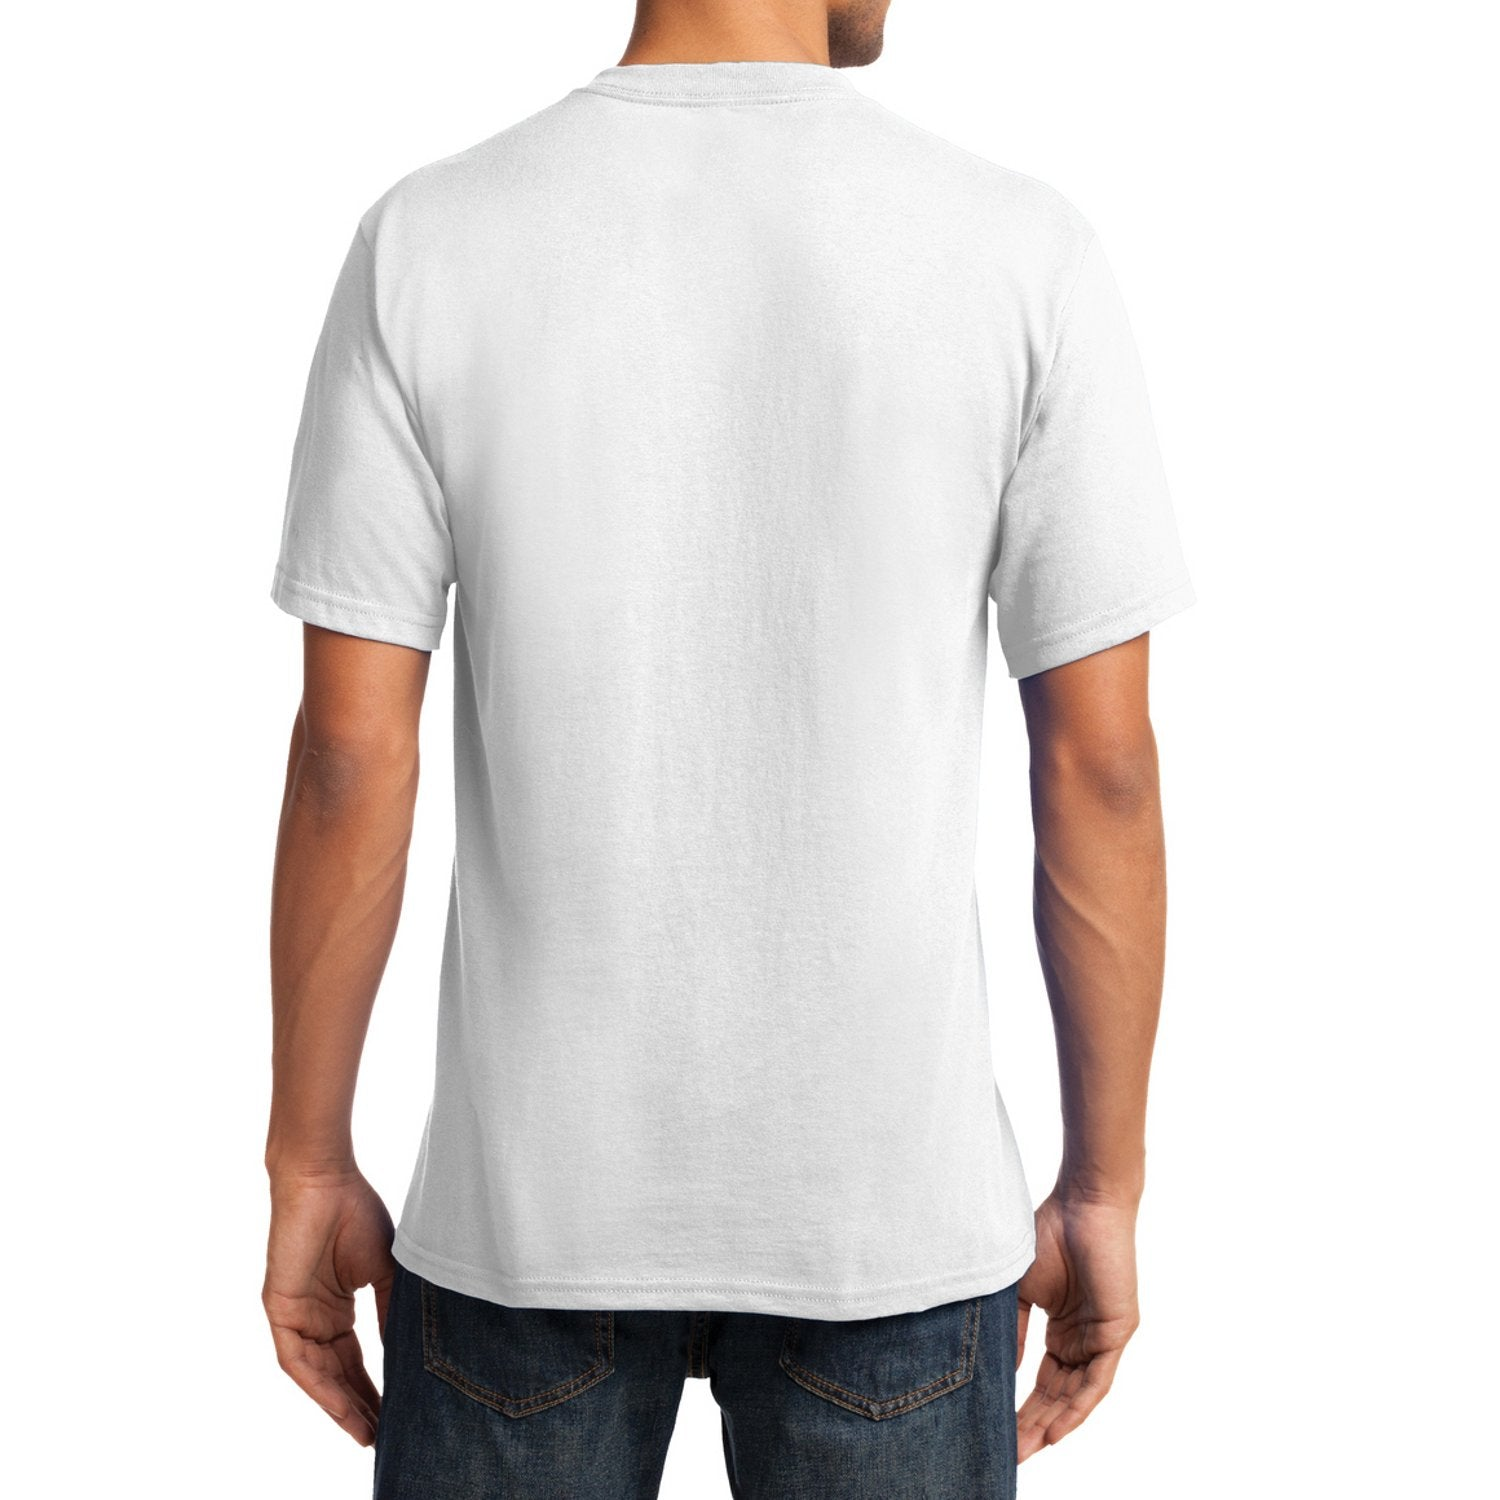 Men's Core Cotton V-Neck Tee White - Back